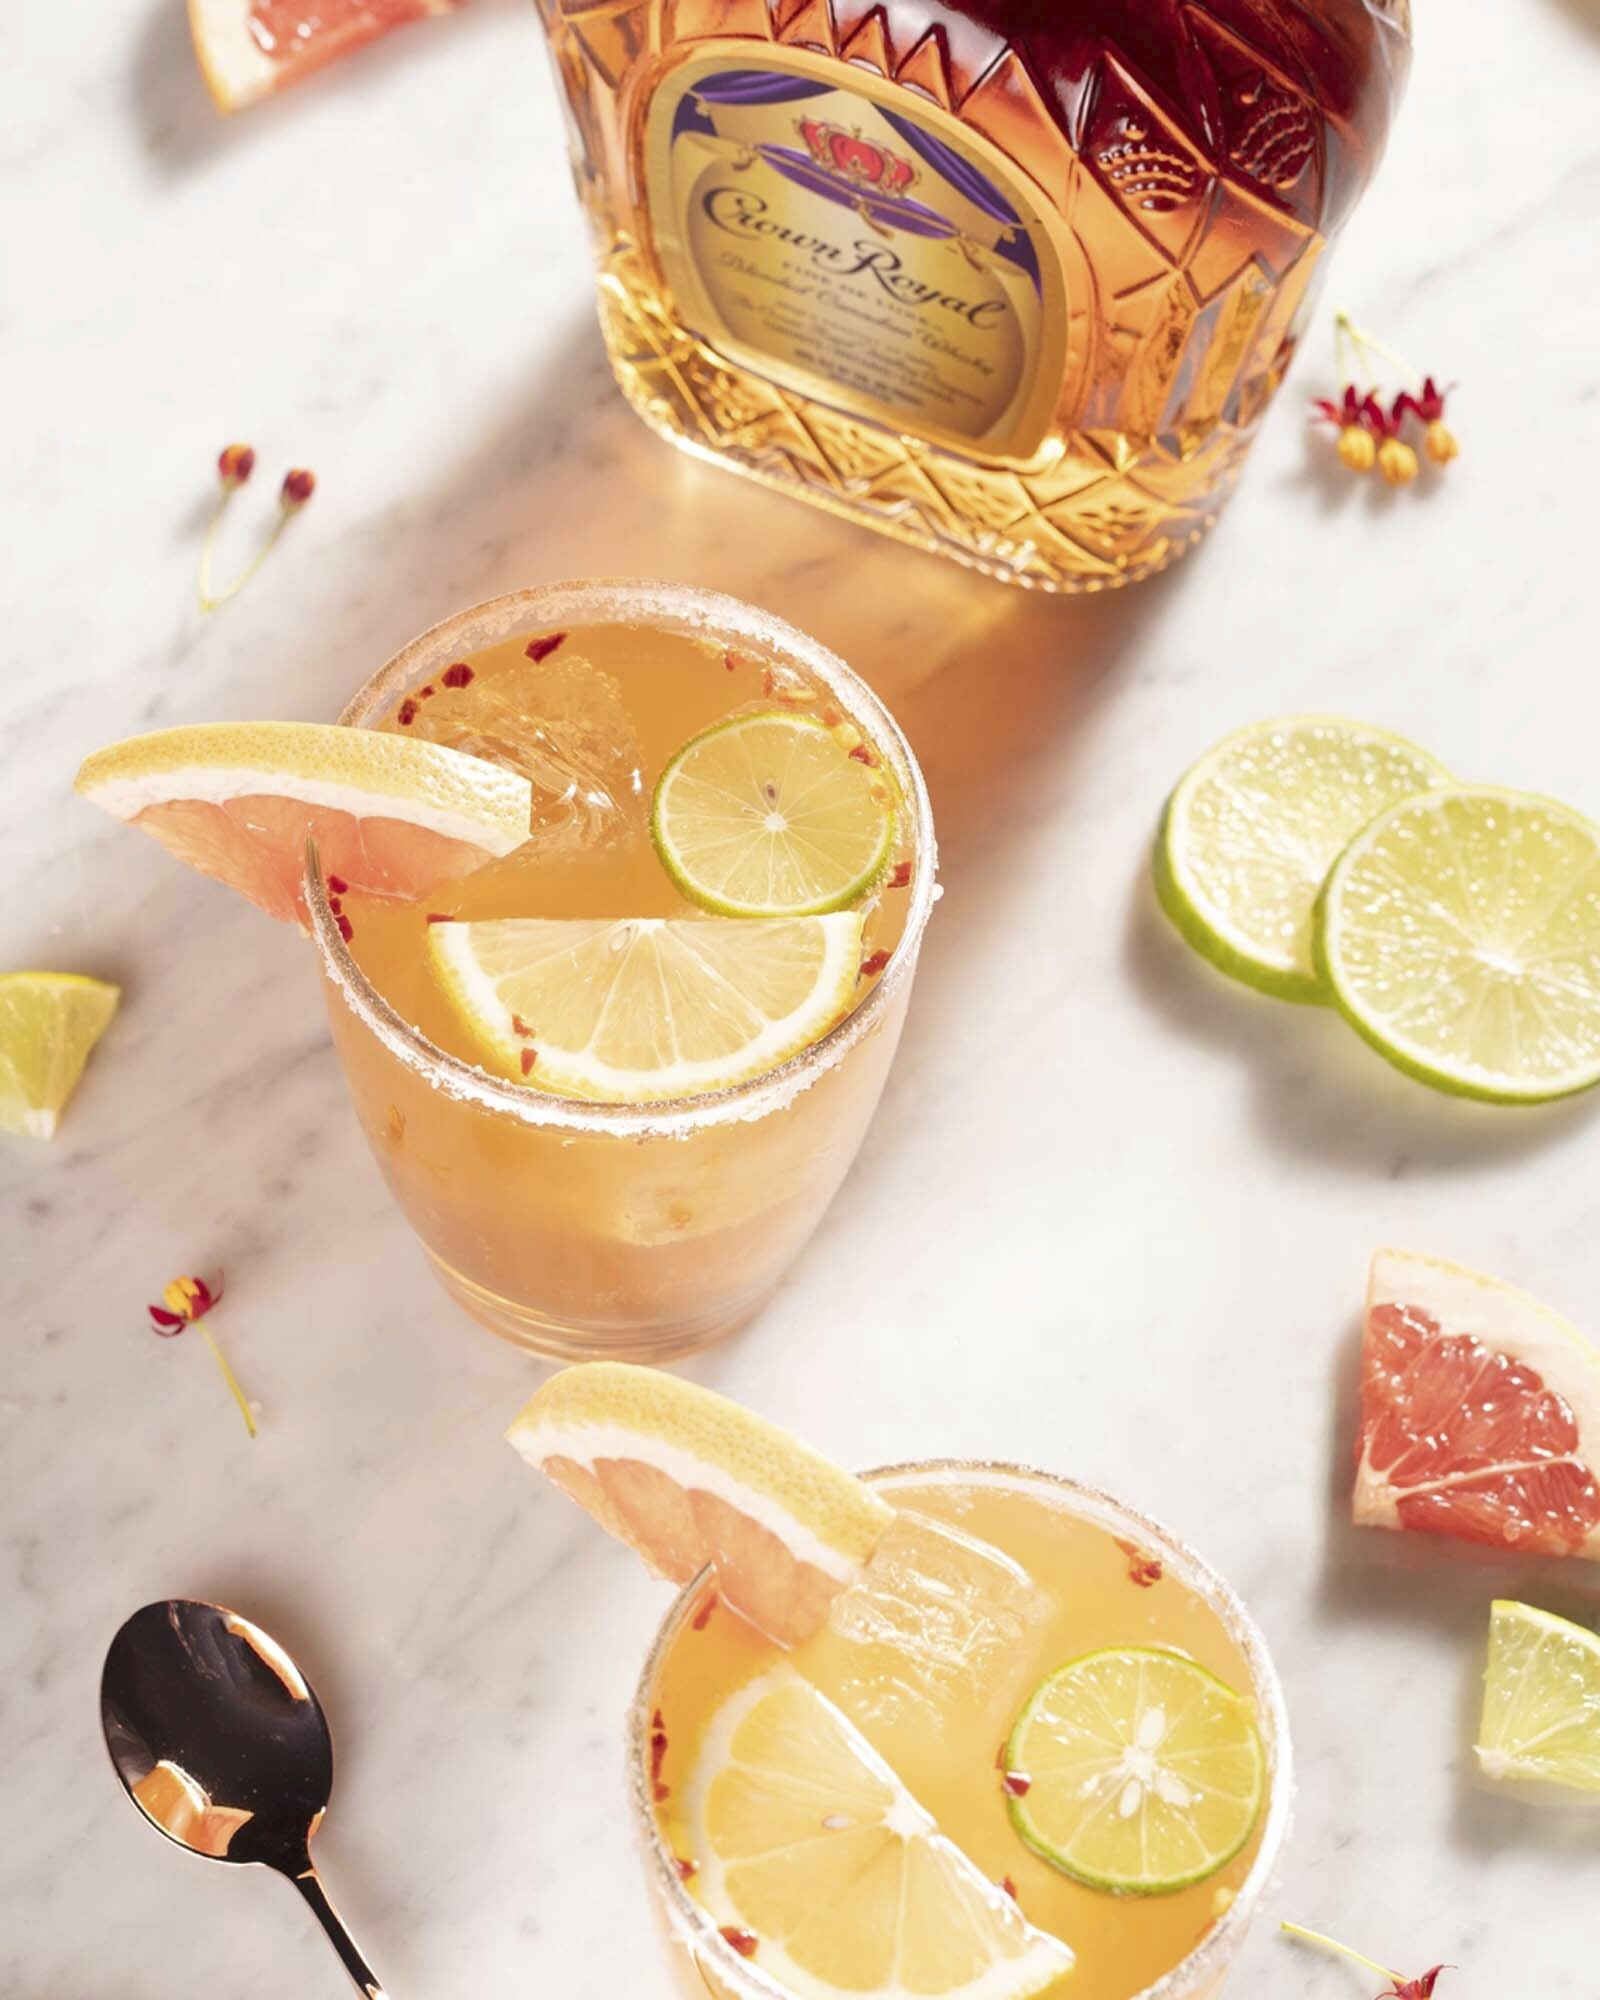 Crown Royal Whisky Paloma Whisky Cocktail